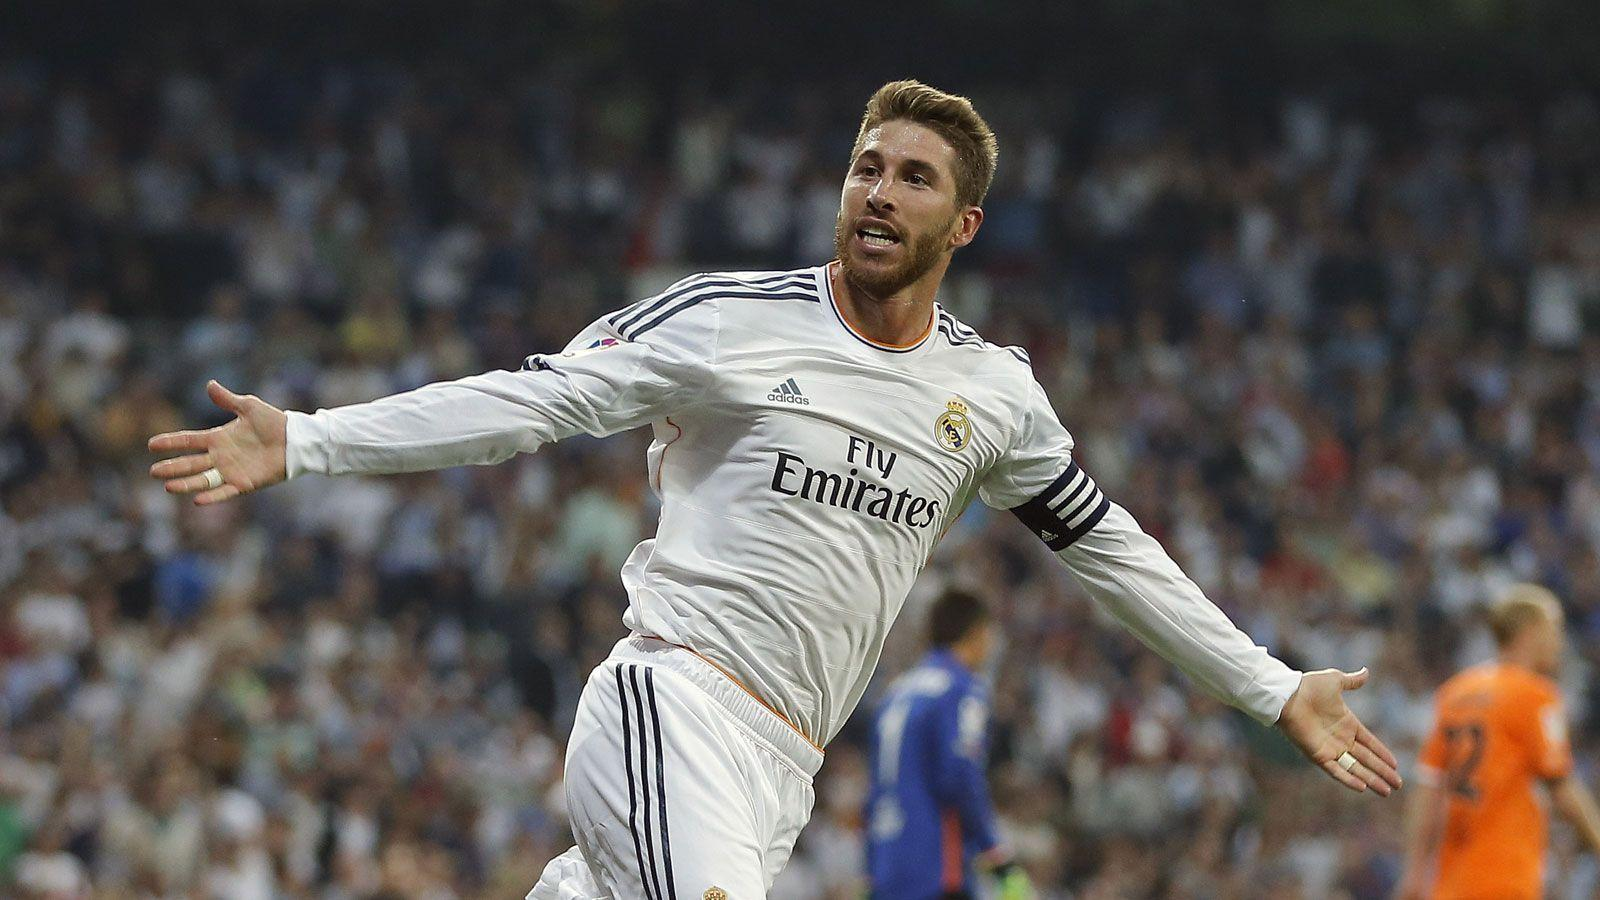 sergio ramos hd images - photo #8